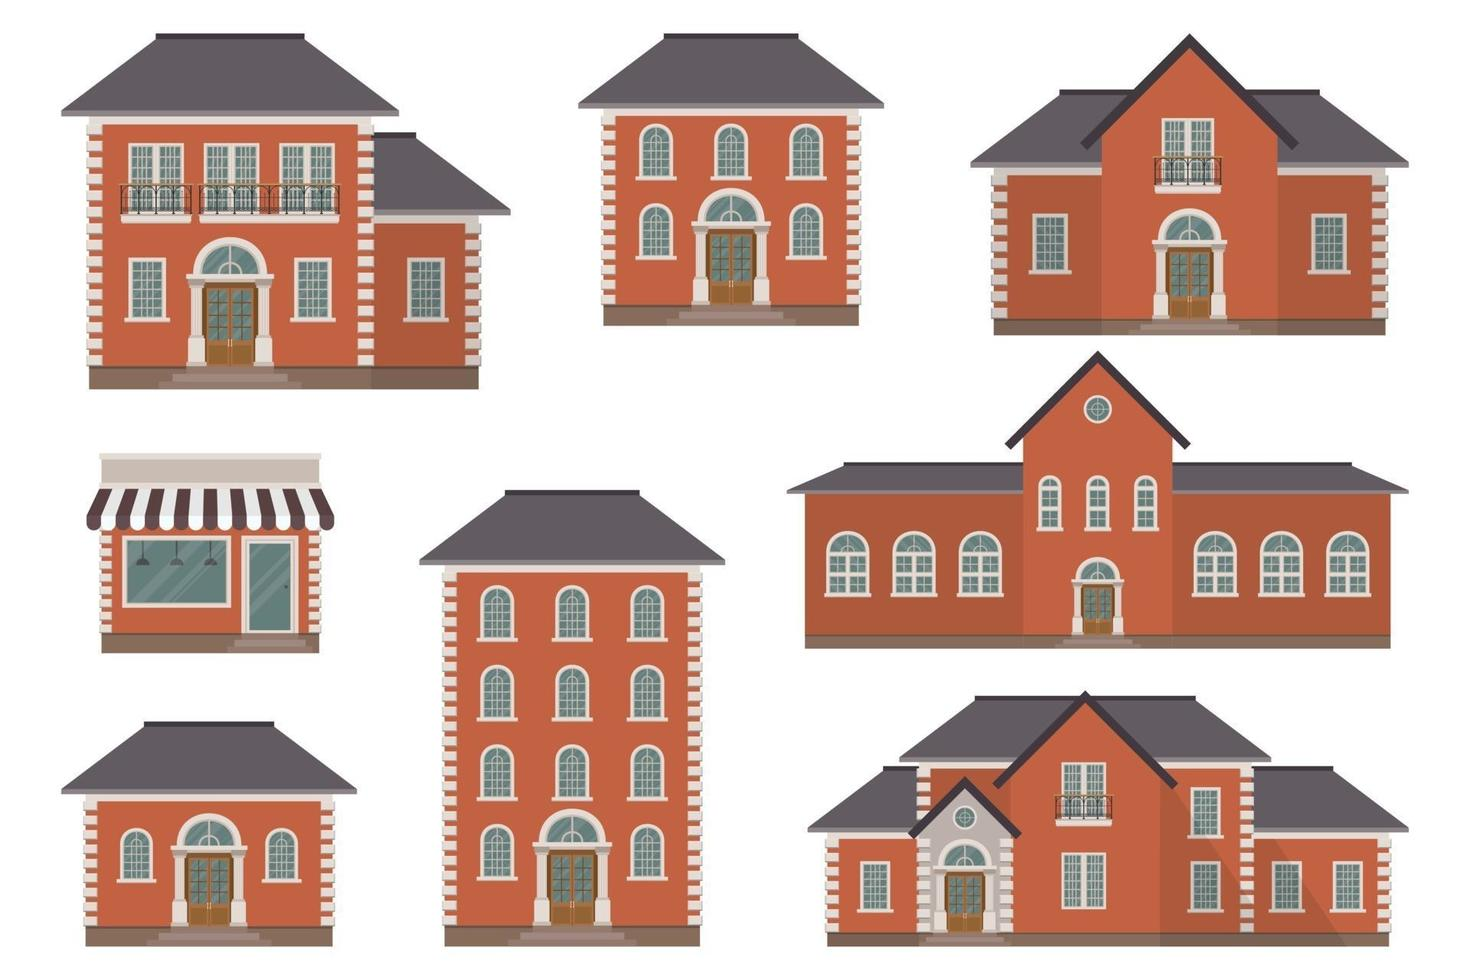 House building vector illustration isolated on white background